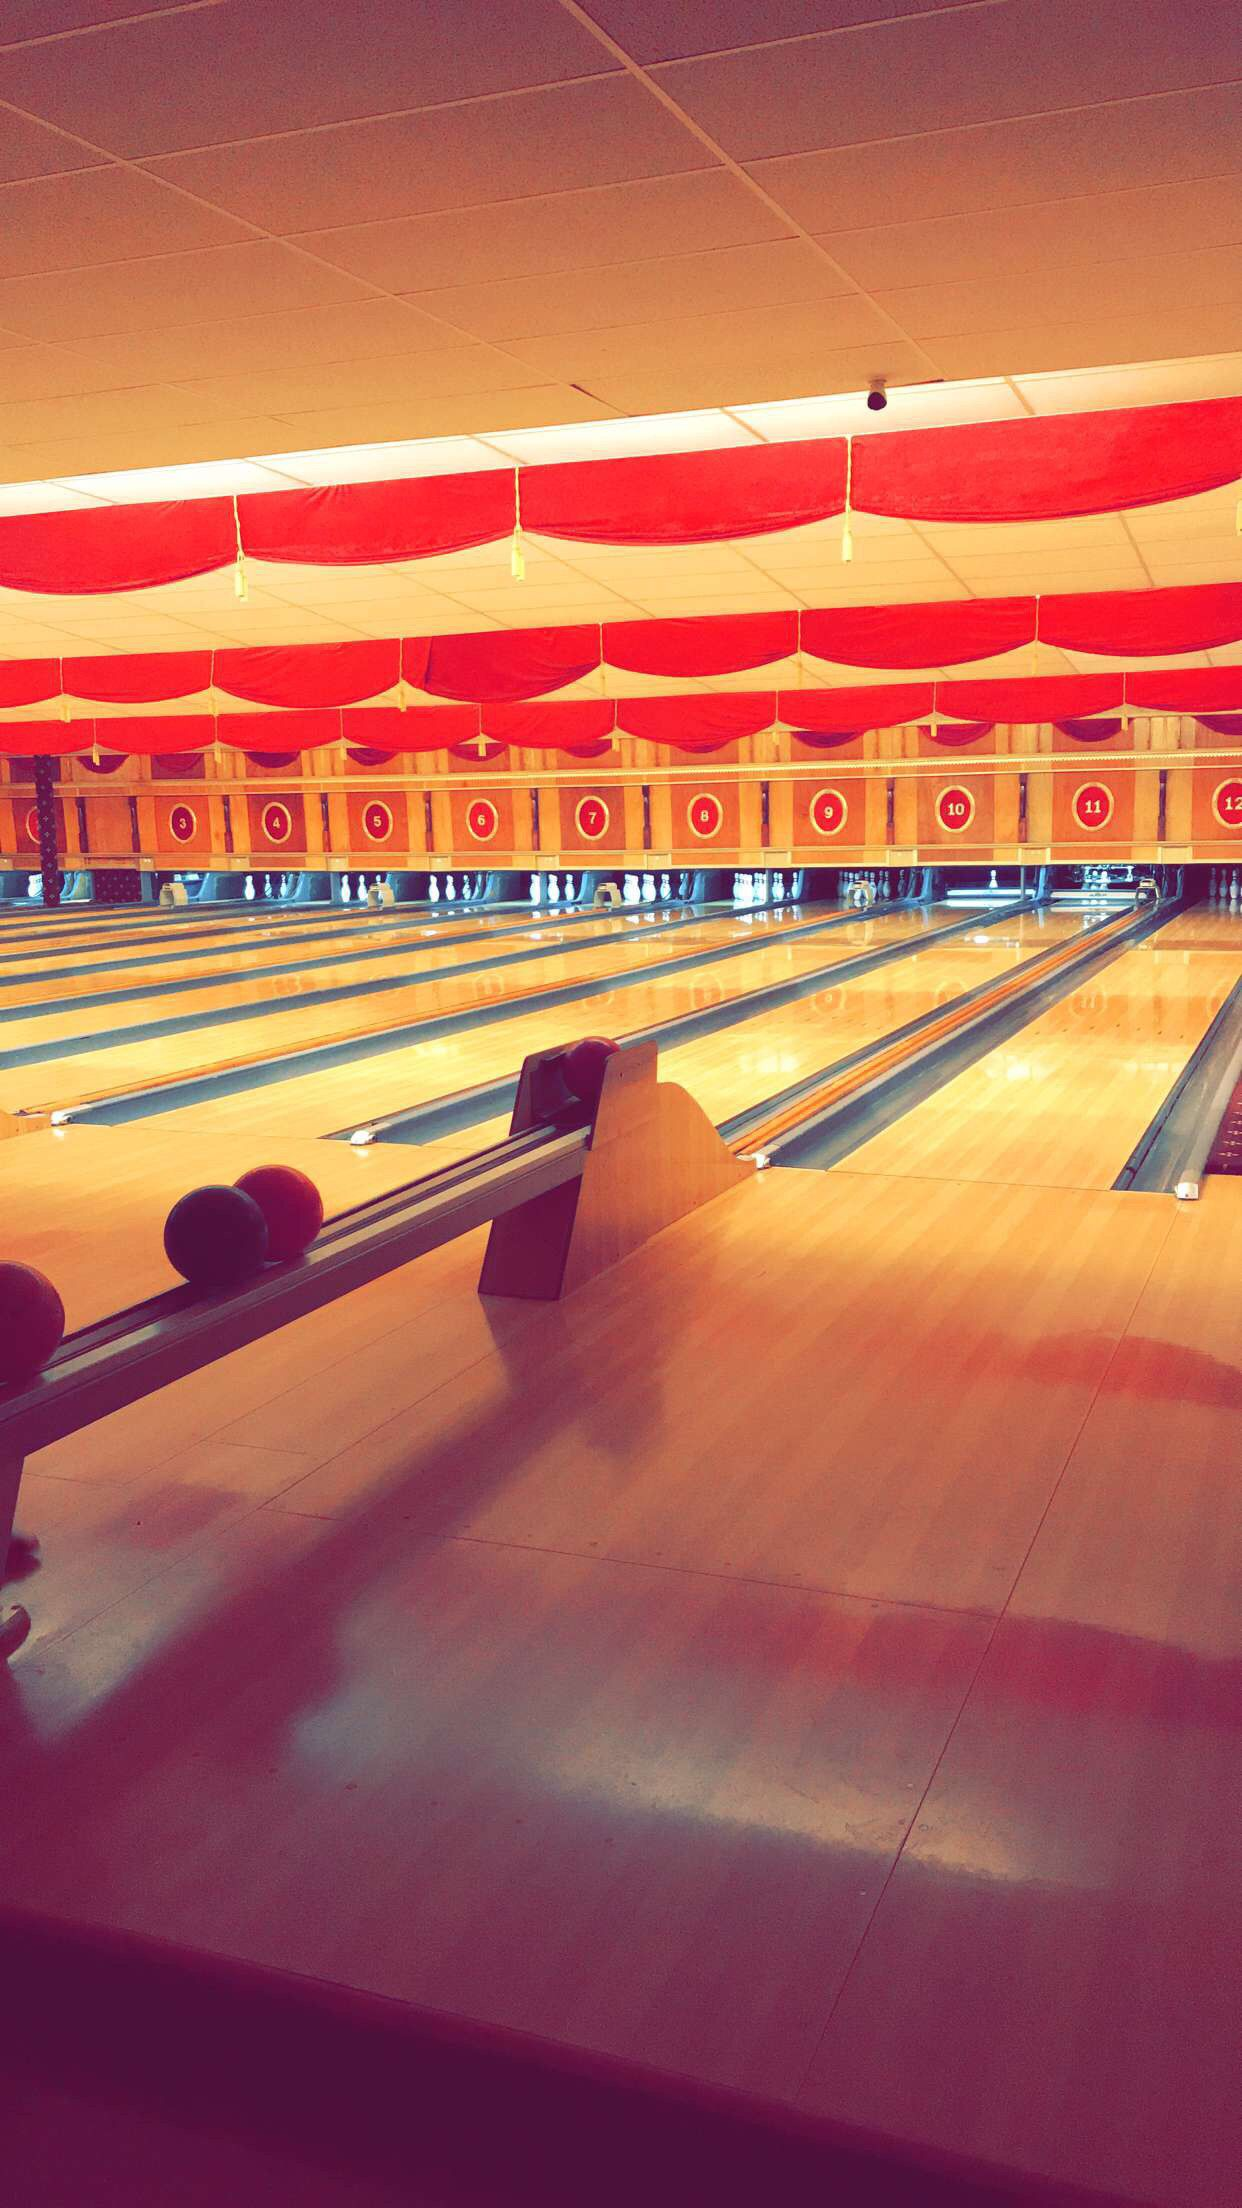 Bowling Alley Bowling Alley Phone Wallpaper Bowling